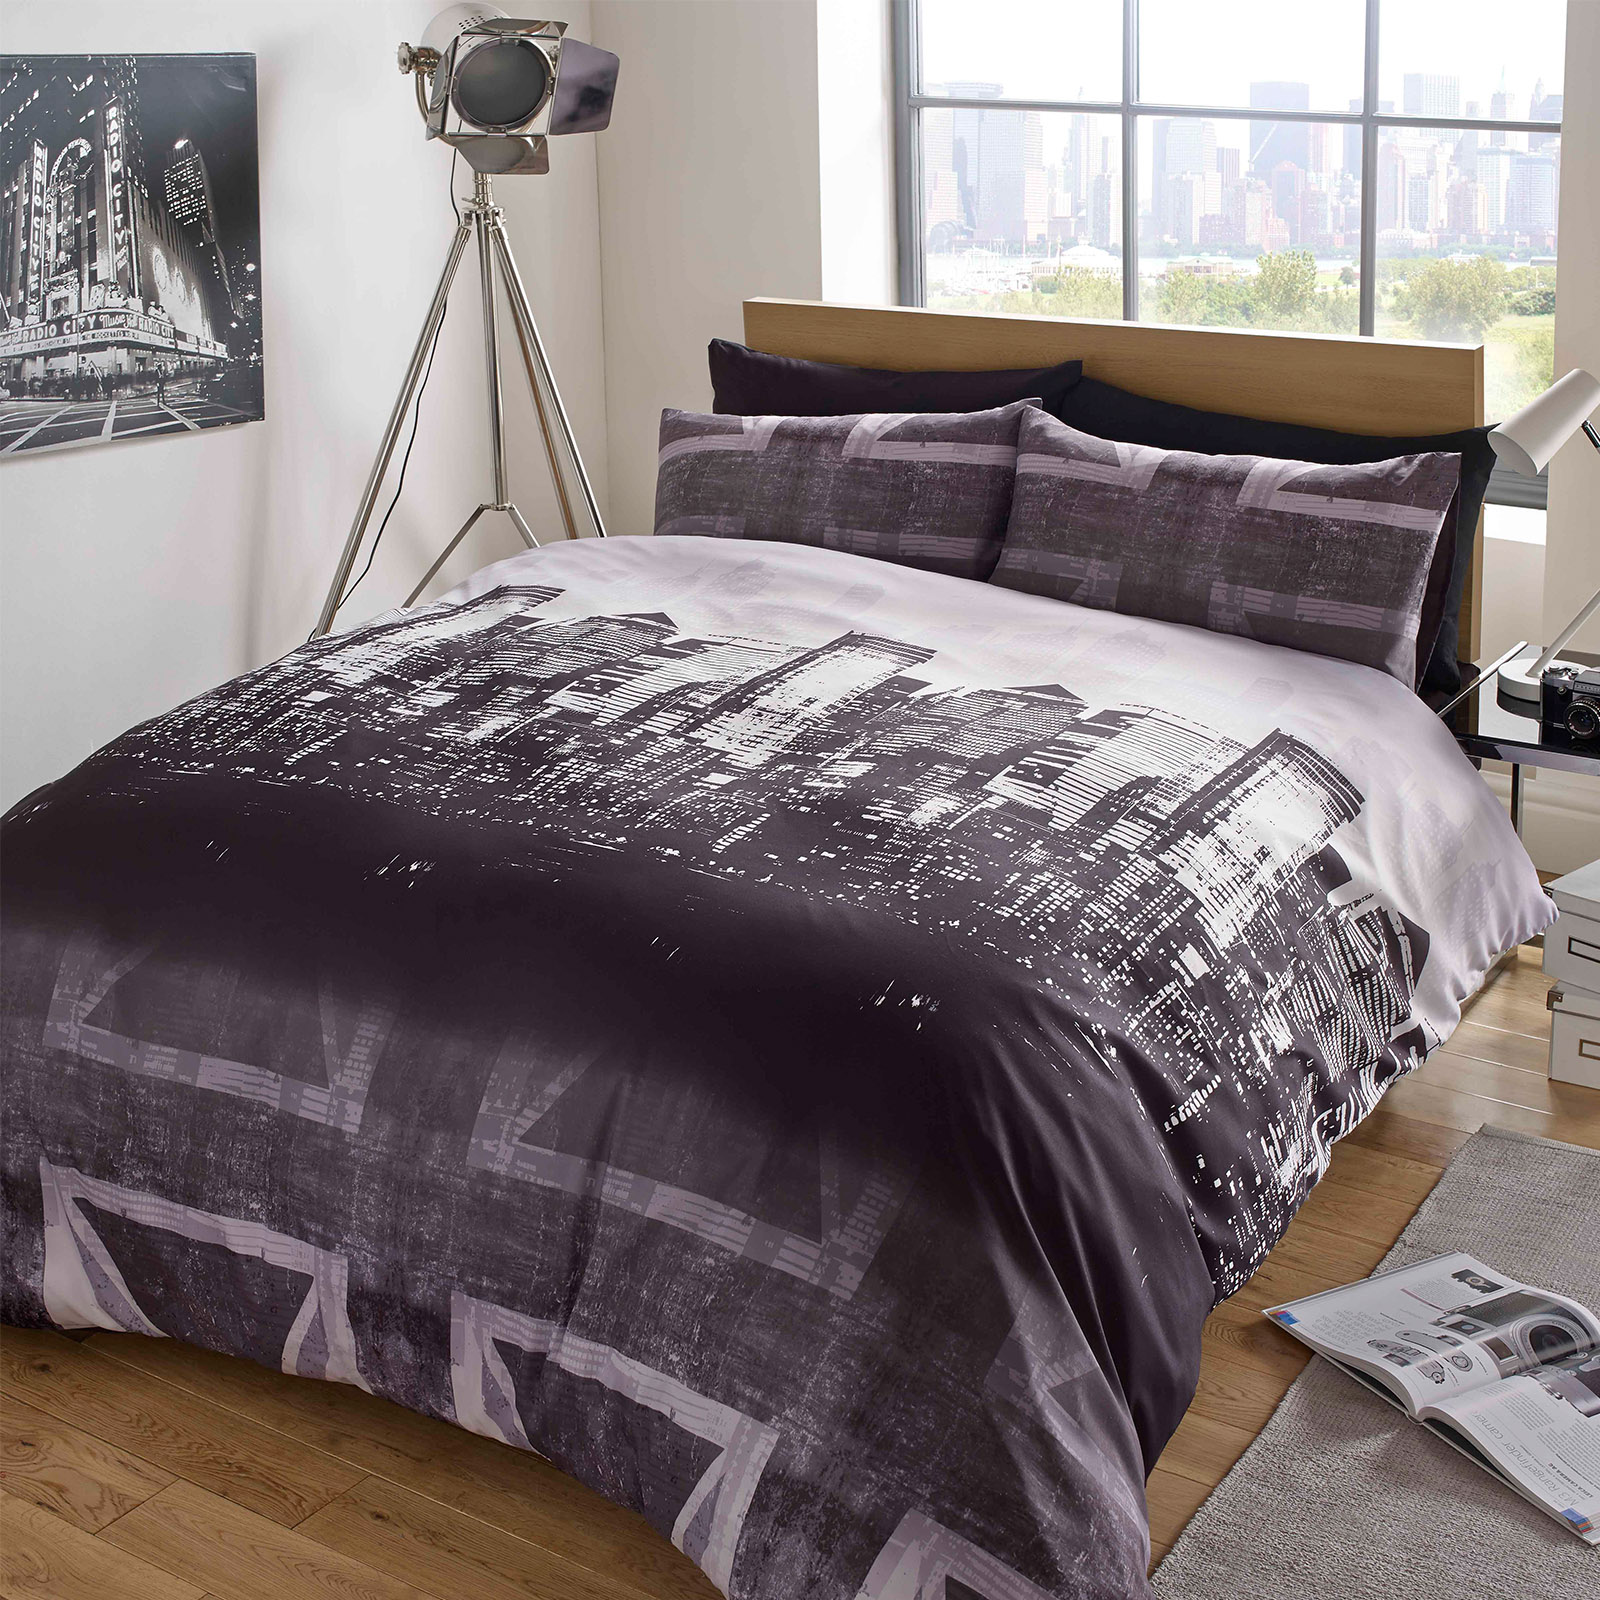 Black White And Grey Duvet Covers Dreamscene Union Jack Duvet Cover With Pillow Case London